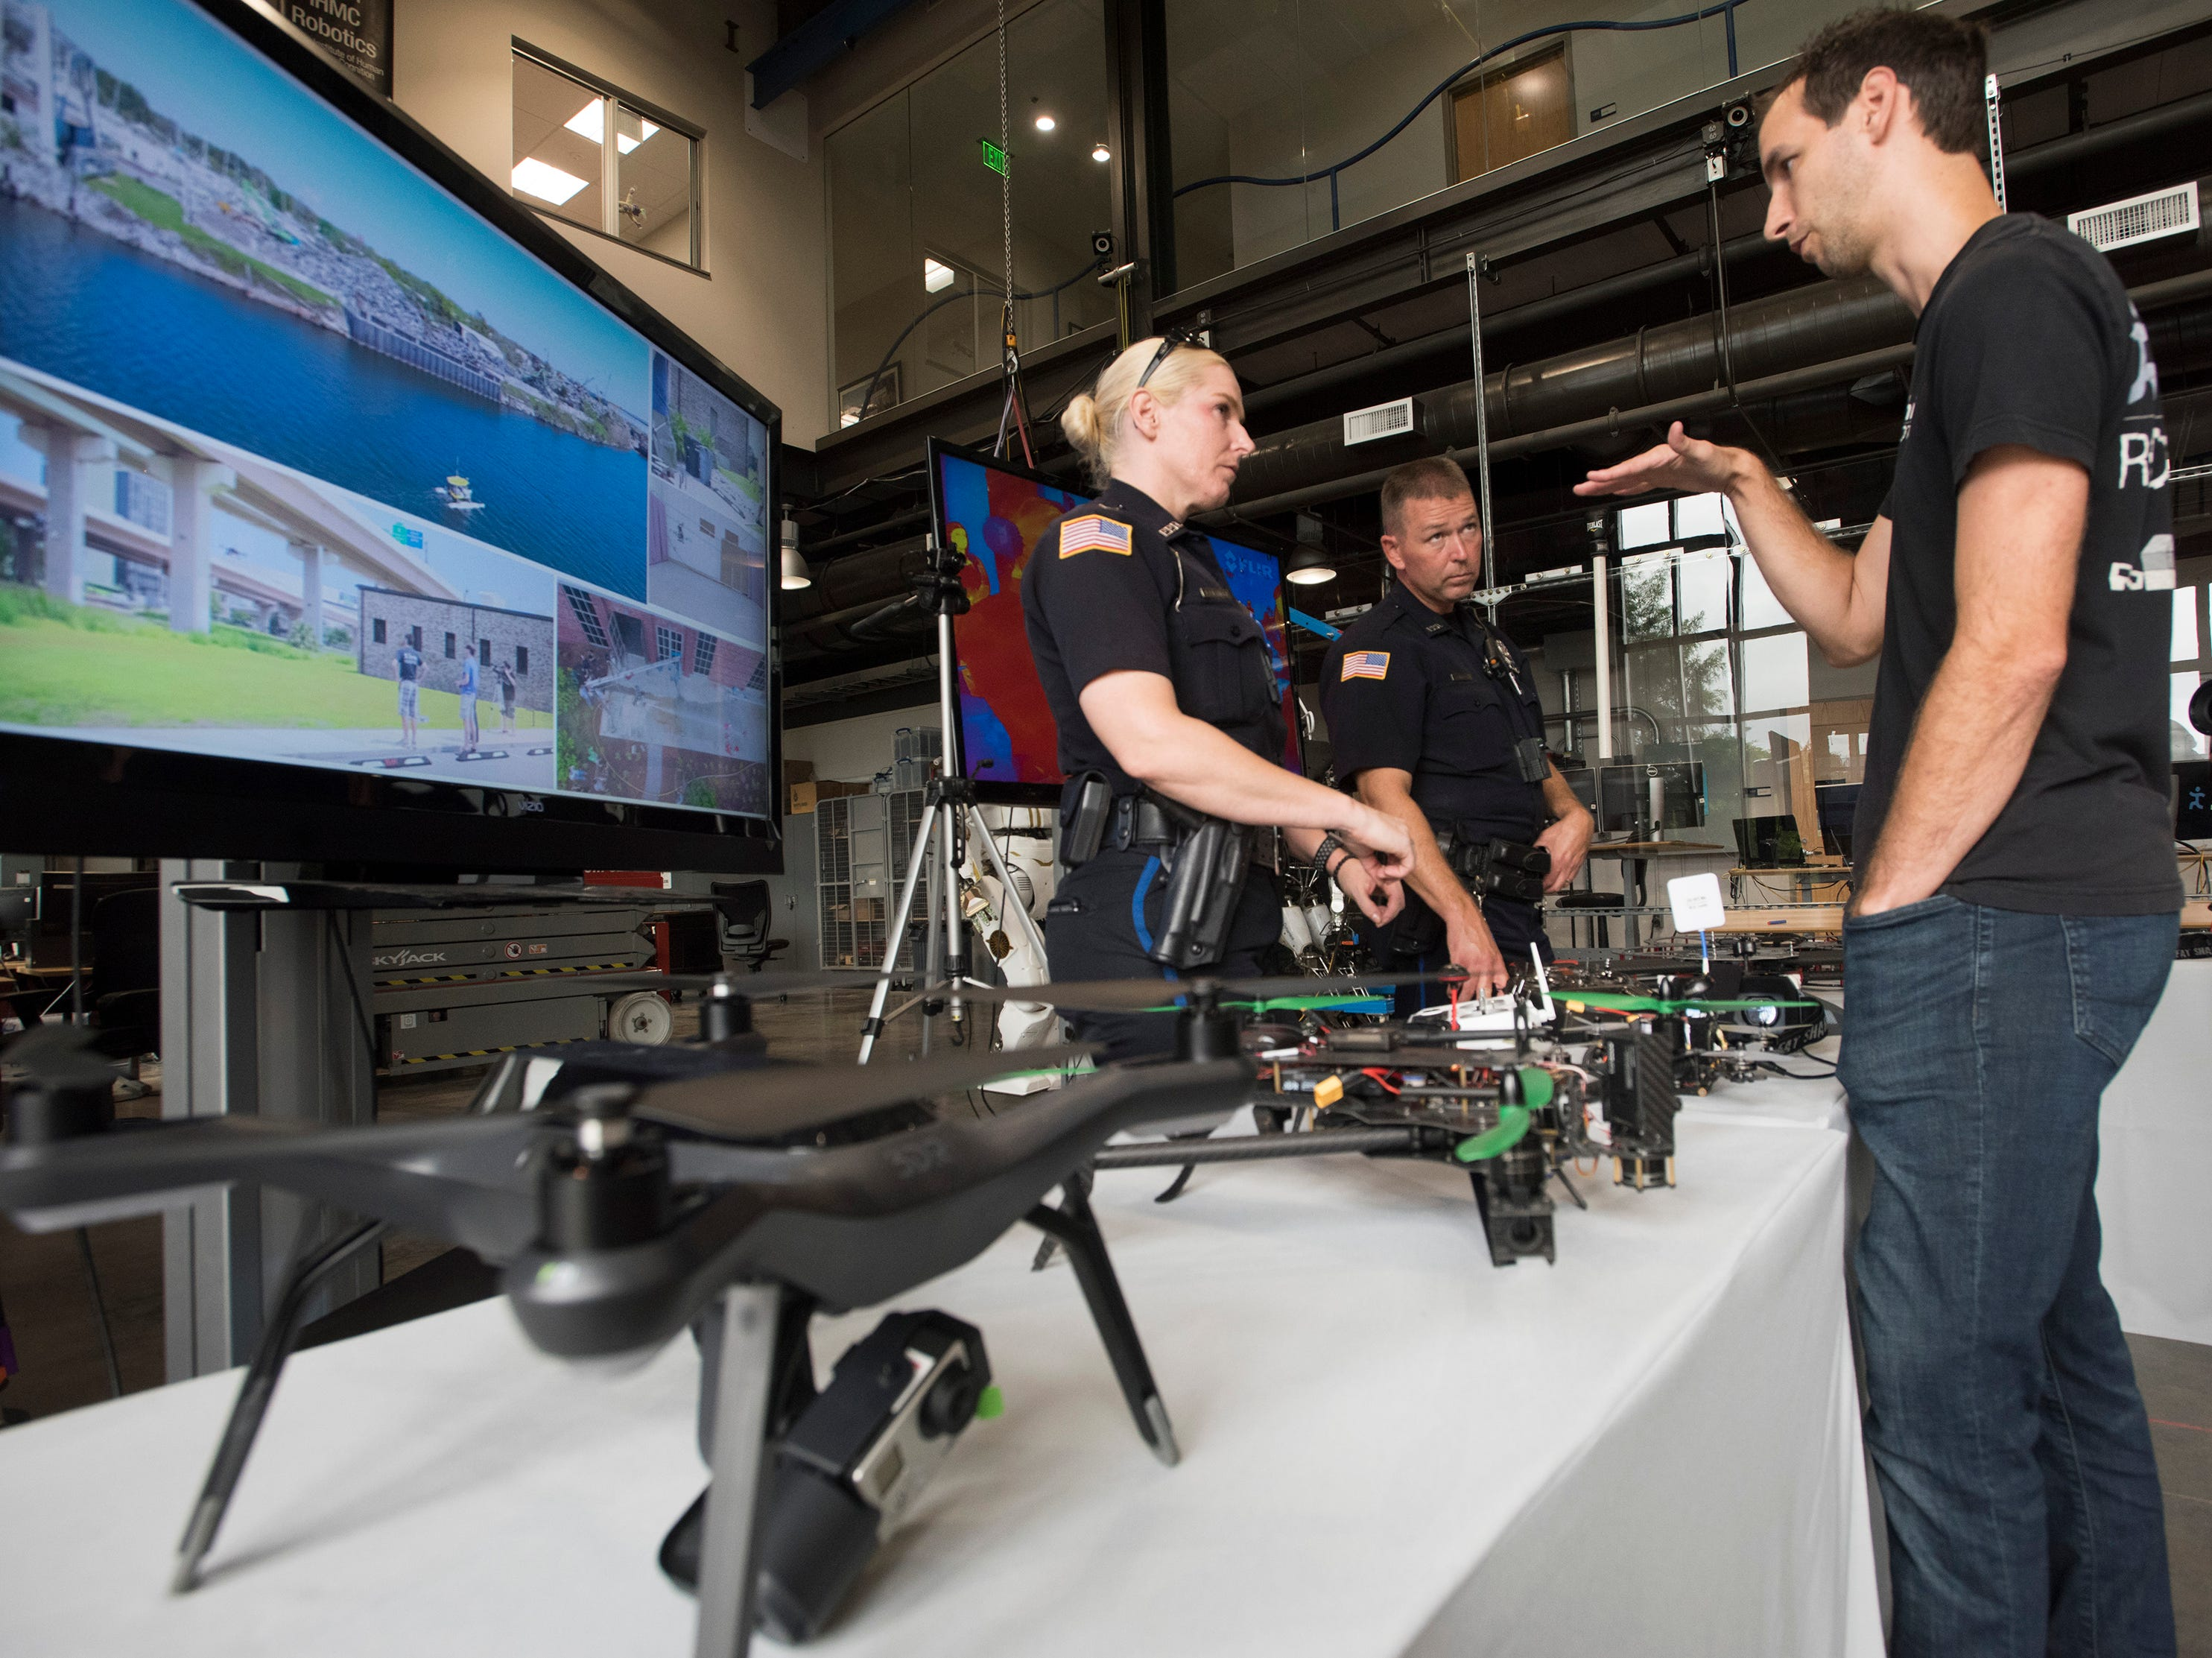 Institute of Human and Machine Cognition, Research Assoc. John Carff describes the drone technology available on the open market to Pensacola Police Officers, Kelly Eierhart, and Robert Lindblow during a tour of the IHMC facilities on Thursday, Aug. 16, 2018. The PPD and IHMC are working together on a plan to implement the new technology into its law enforcement capabilities.